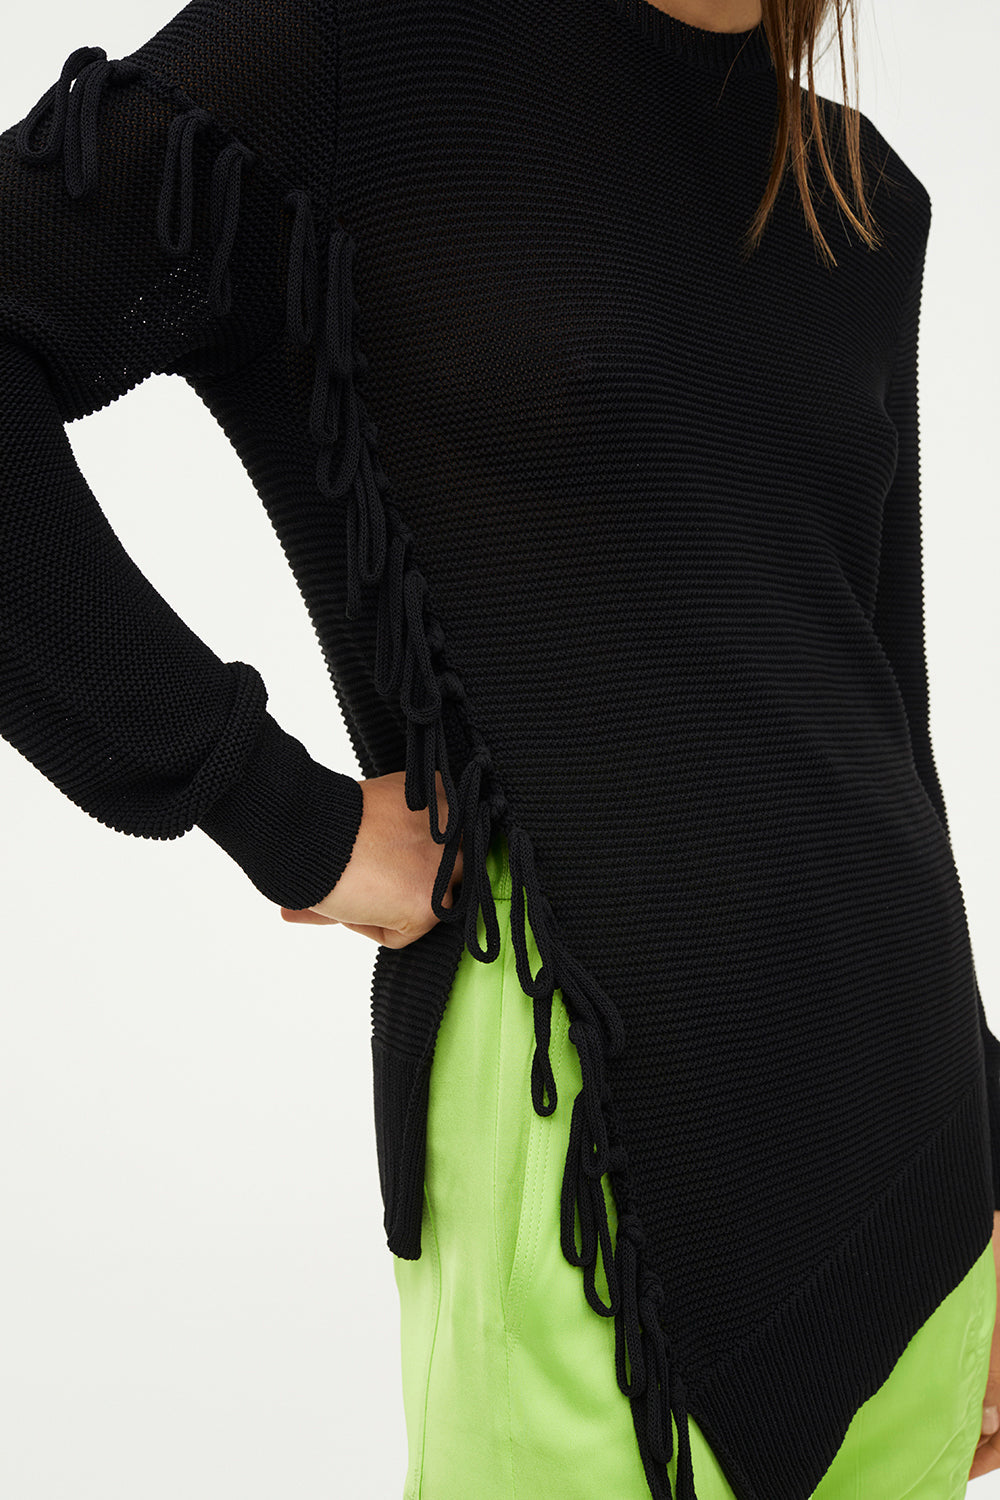 FRINGE MOVEMENT KNIT